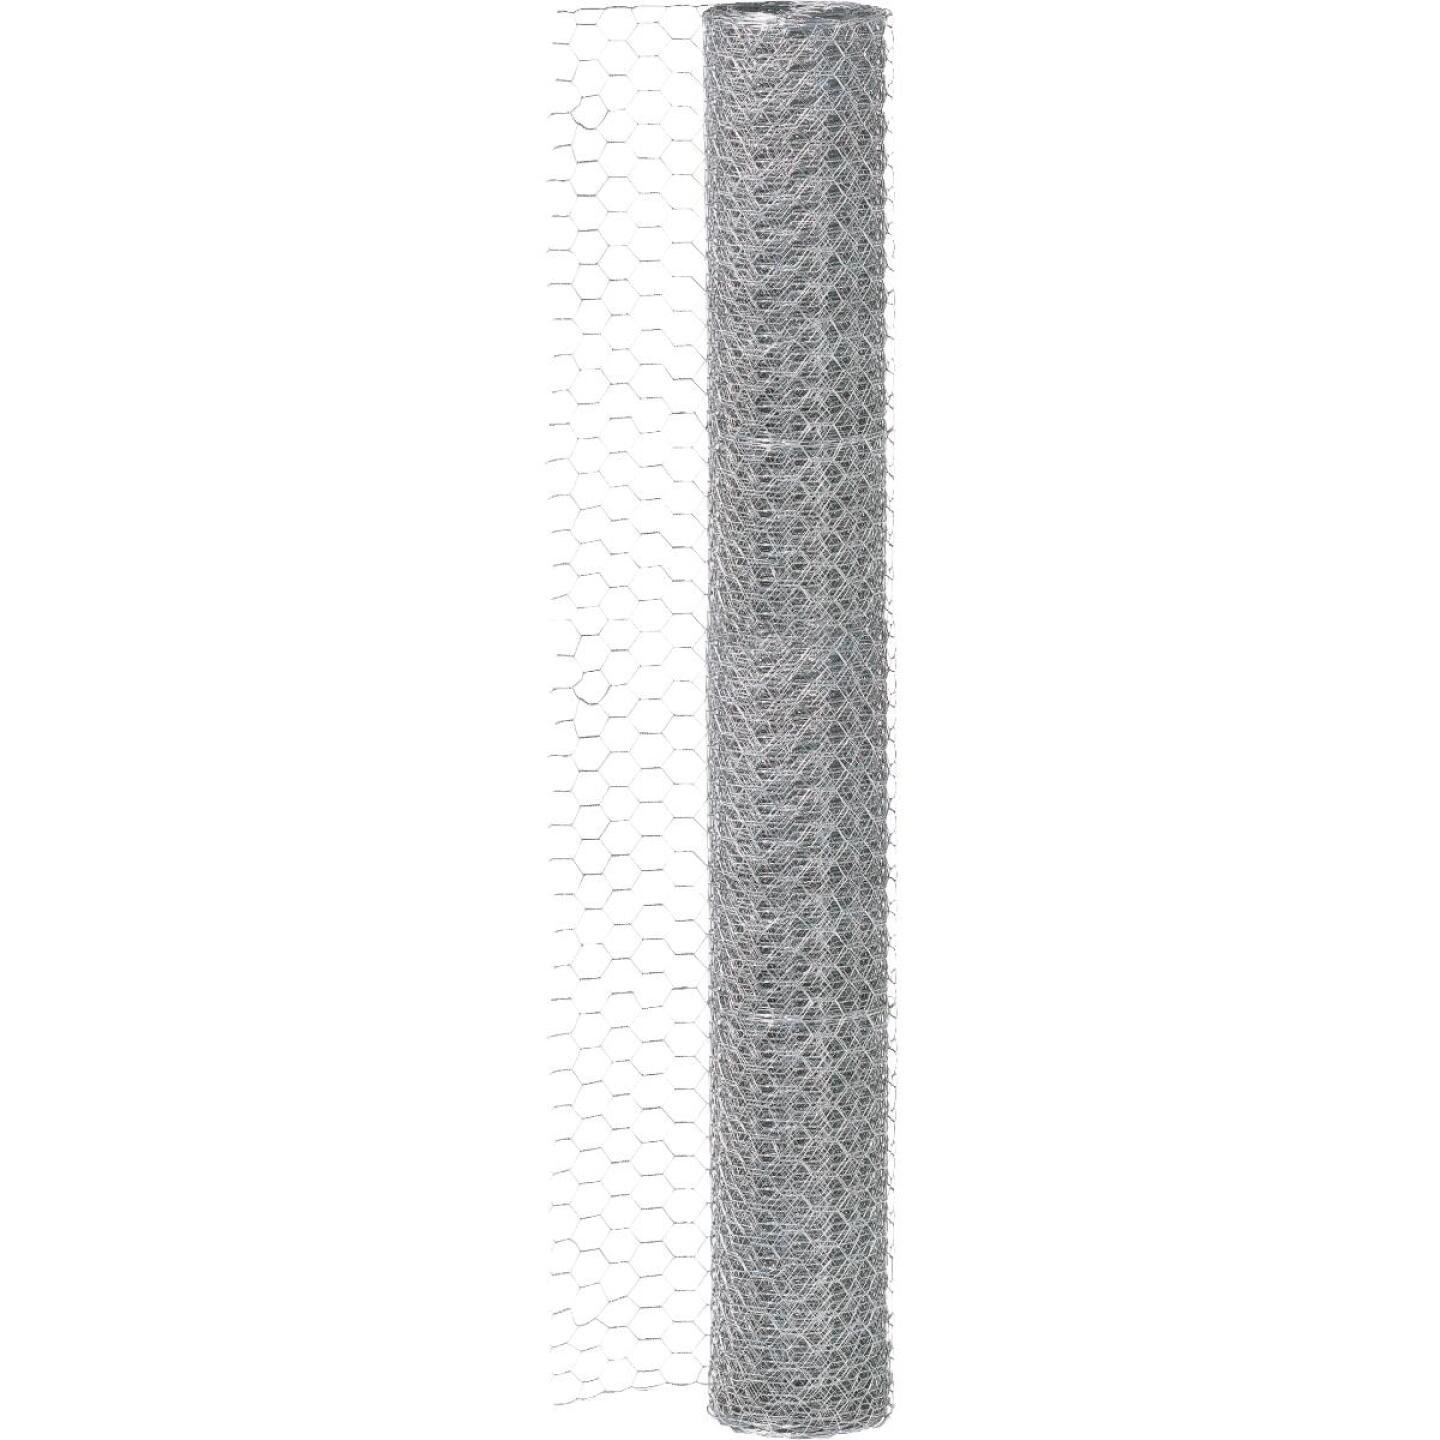 1/2 In. x 48 In. H. x 25 Ft. L. Hexagonal Wire Poultry Netting Image 3